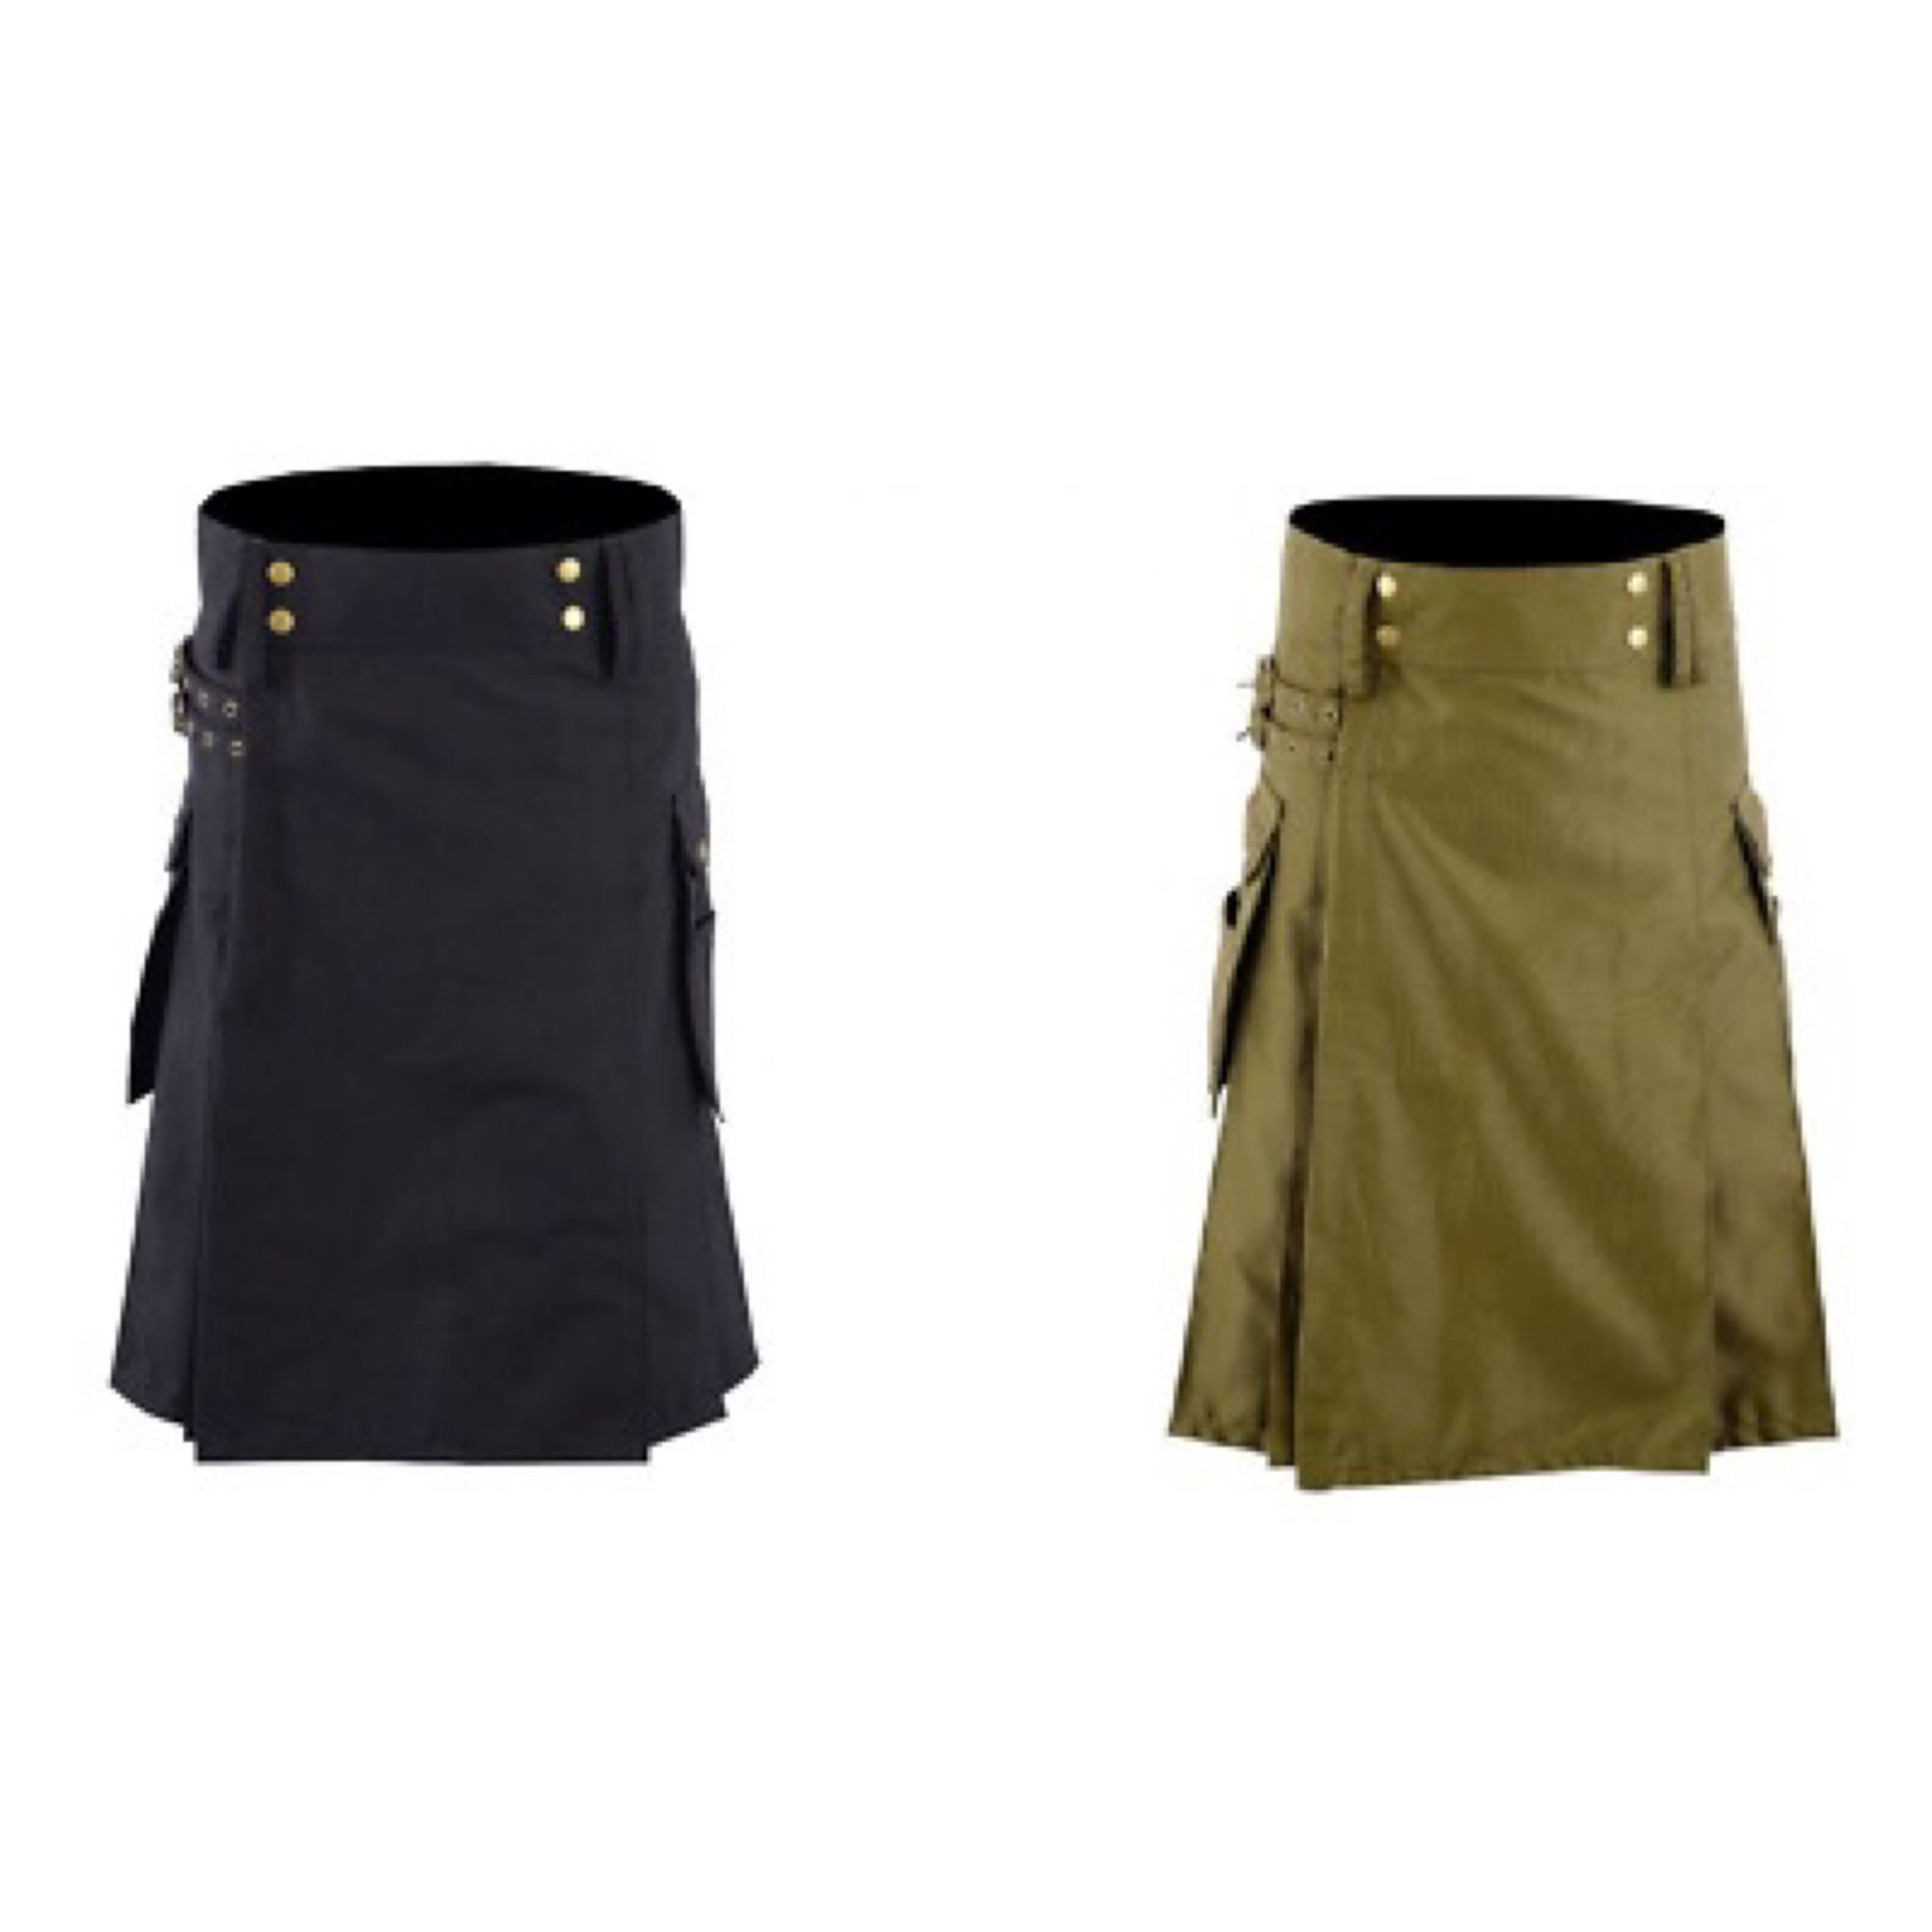 Kilt: 2-pocket Utility